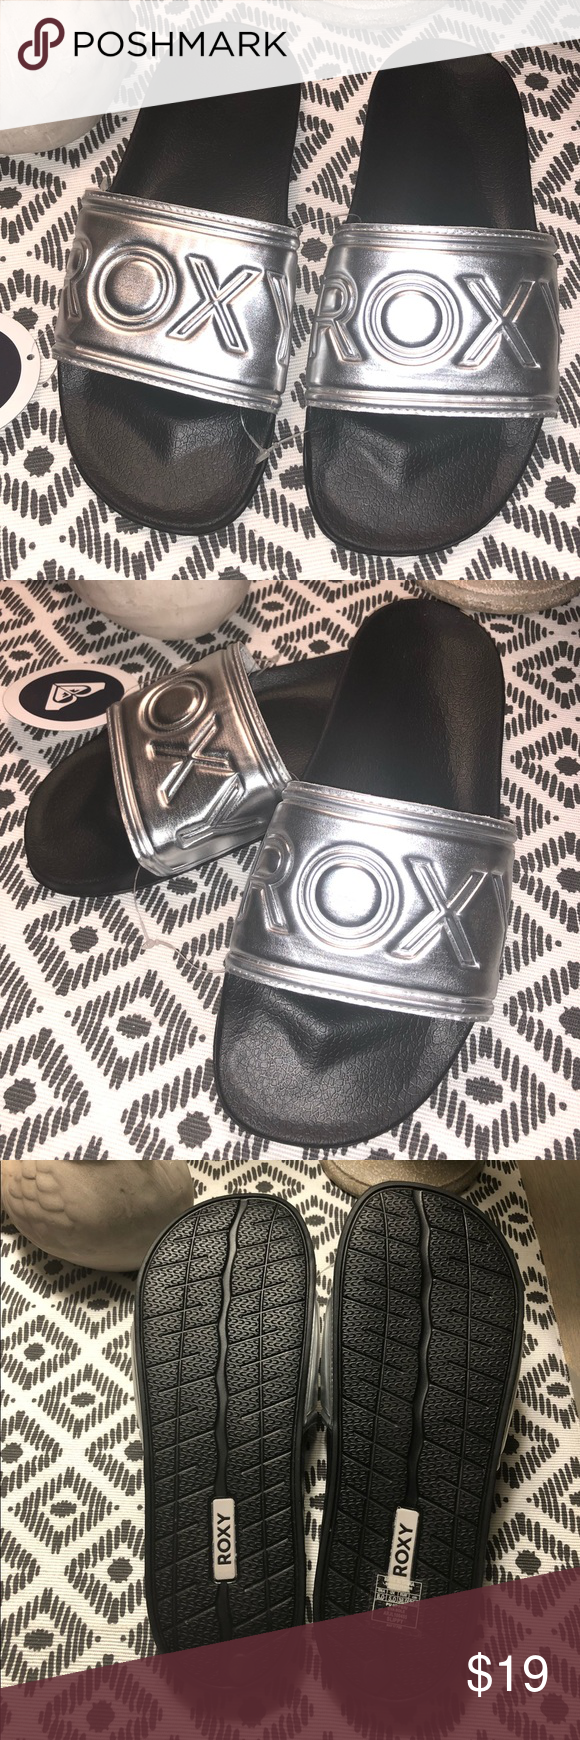 591af4f03a5d Roxy Slippy Slide Sandals - Silver - NWT - 8W Get ready for the summer sun  with the Slippy Slides from Roxy. Whether you are headed to the beach or  the pool ...